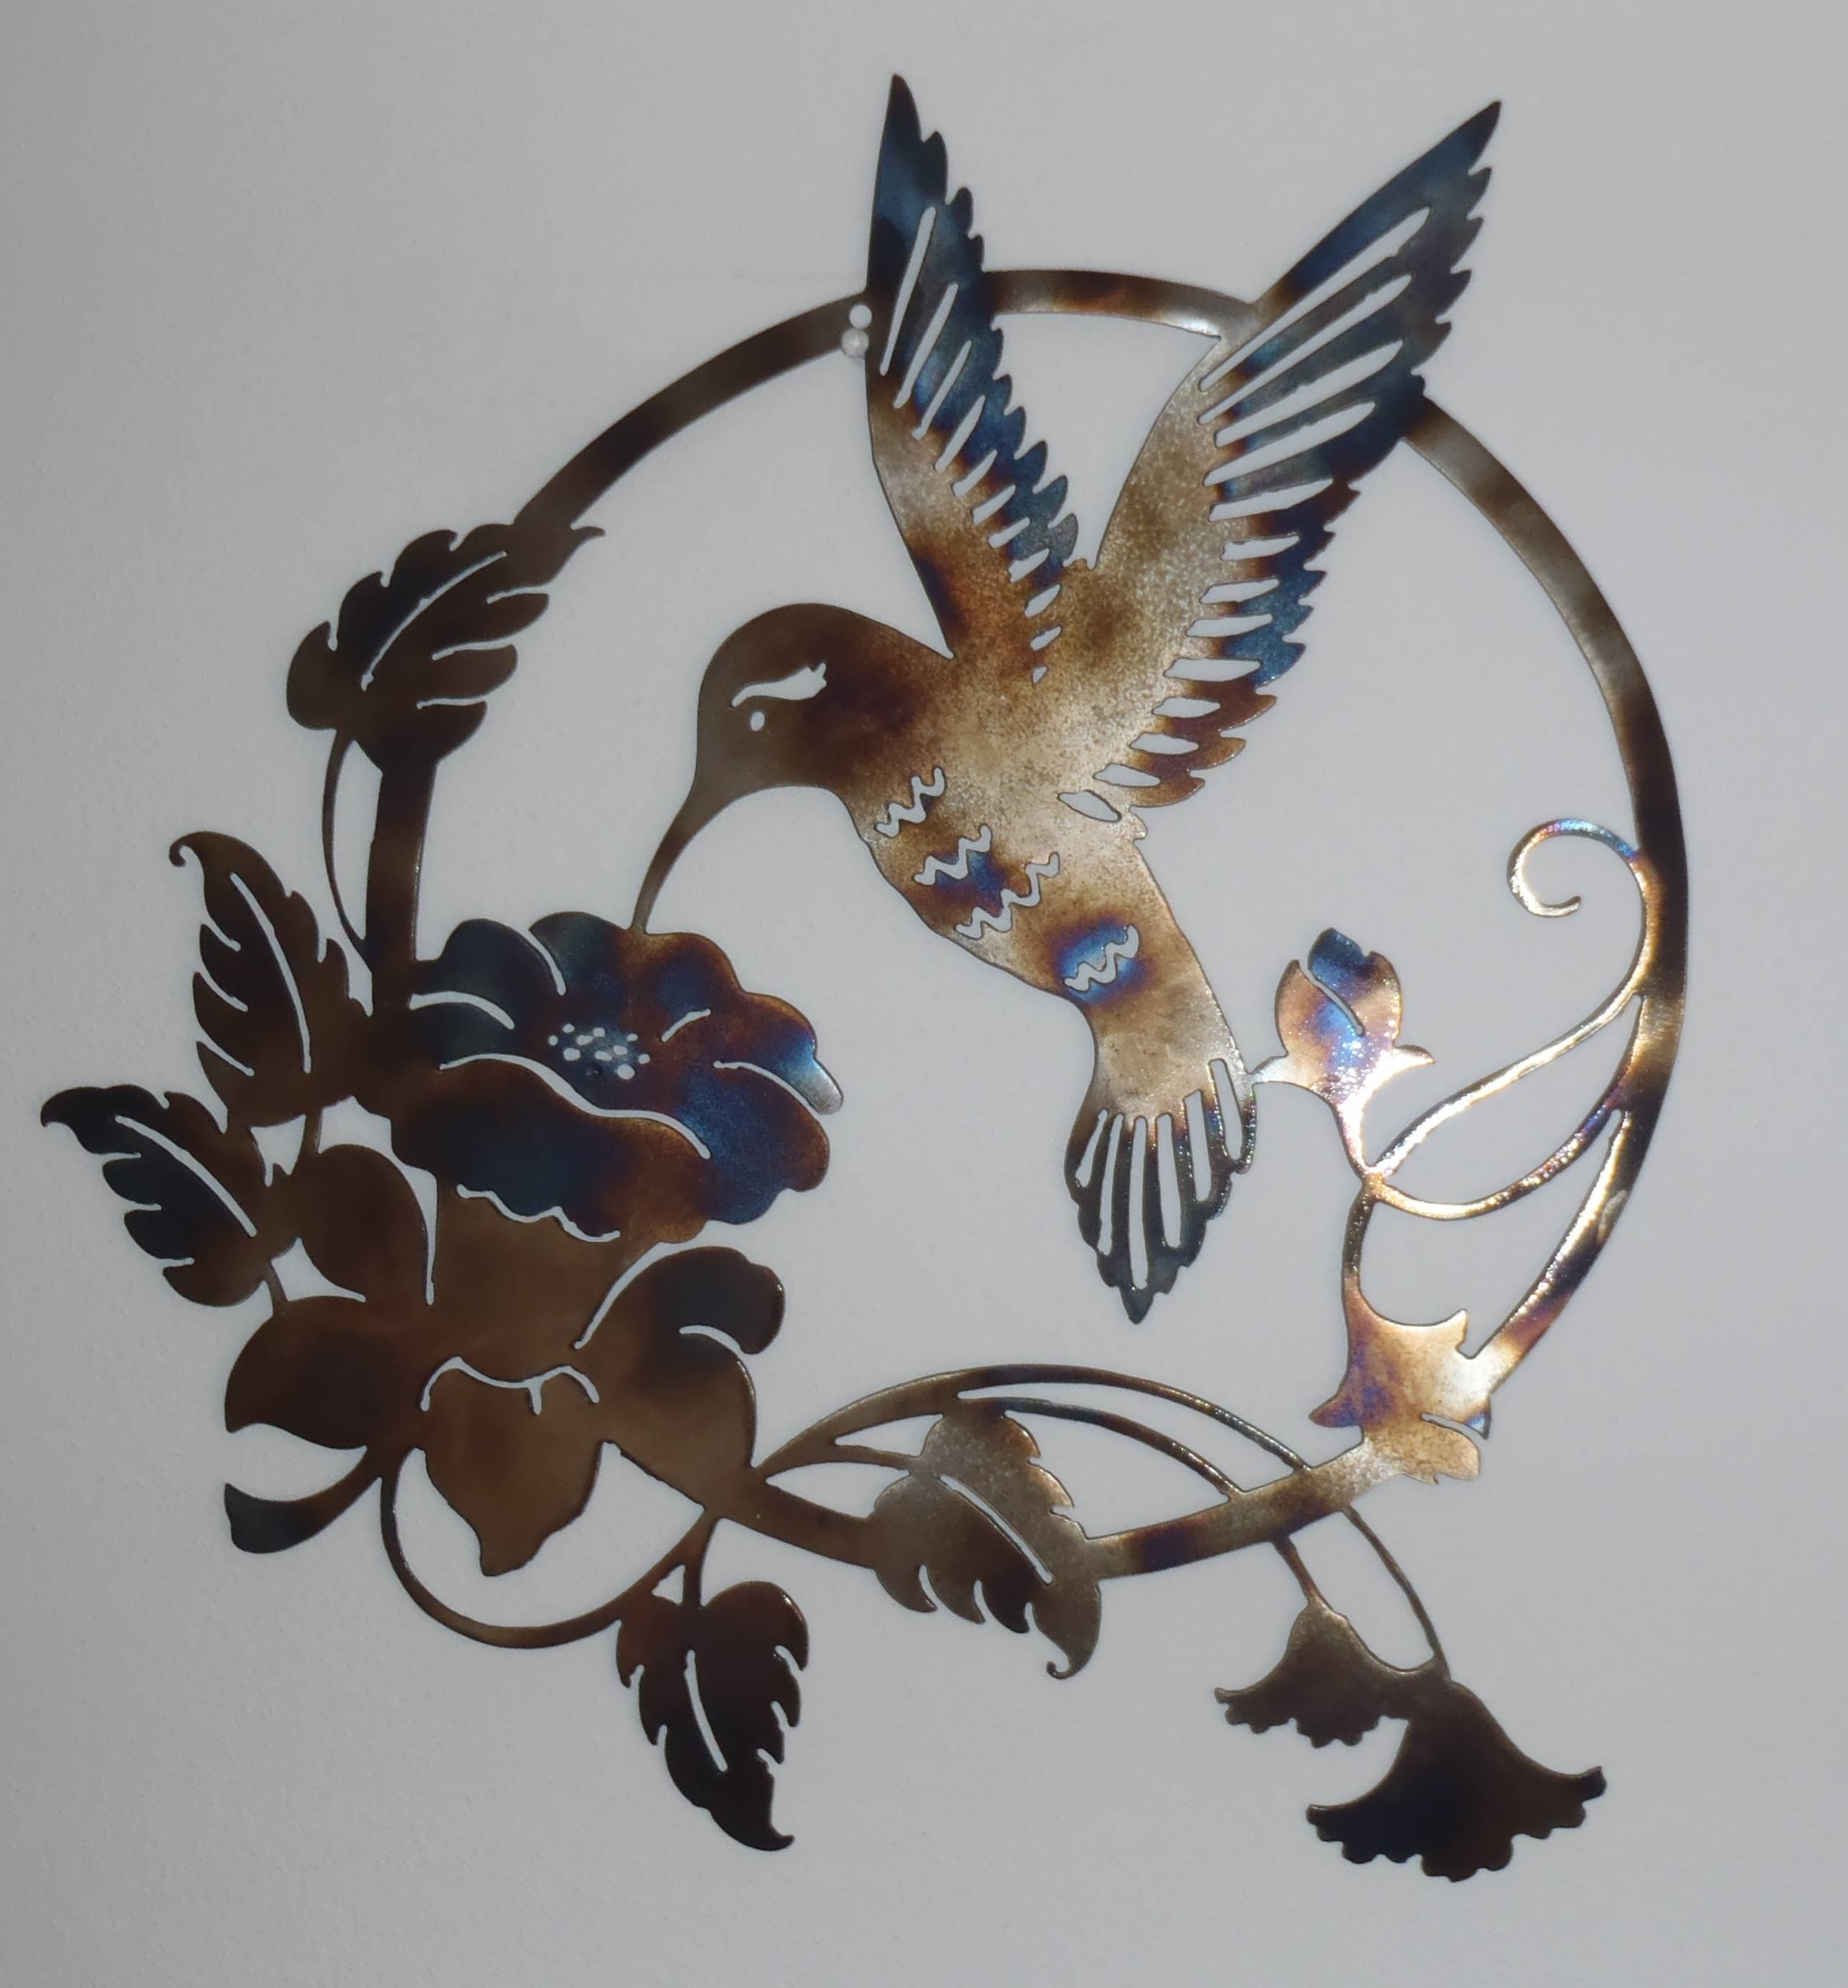 Wall Art Decor Ideas: Hummingbird And Flower Sign Nature Metal Inside Most Recent Nature Metal Wall Art (View 15 of 20)